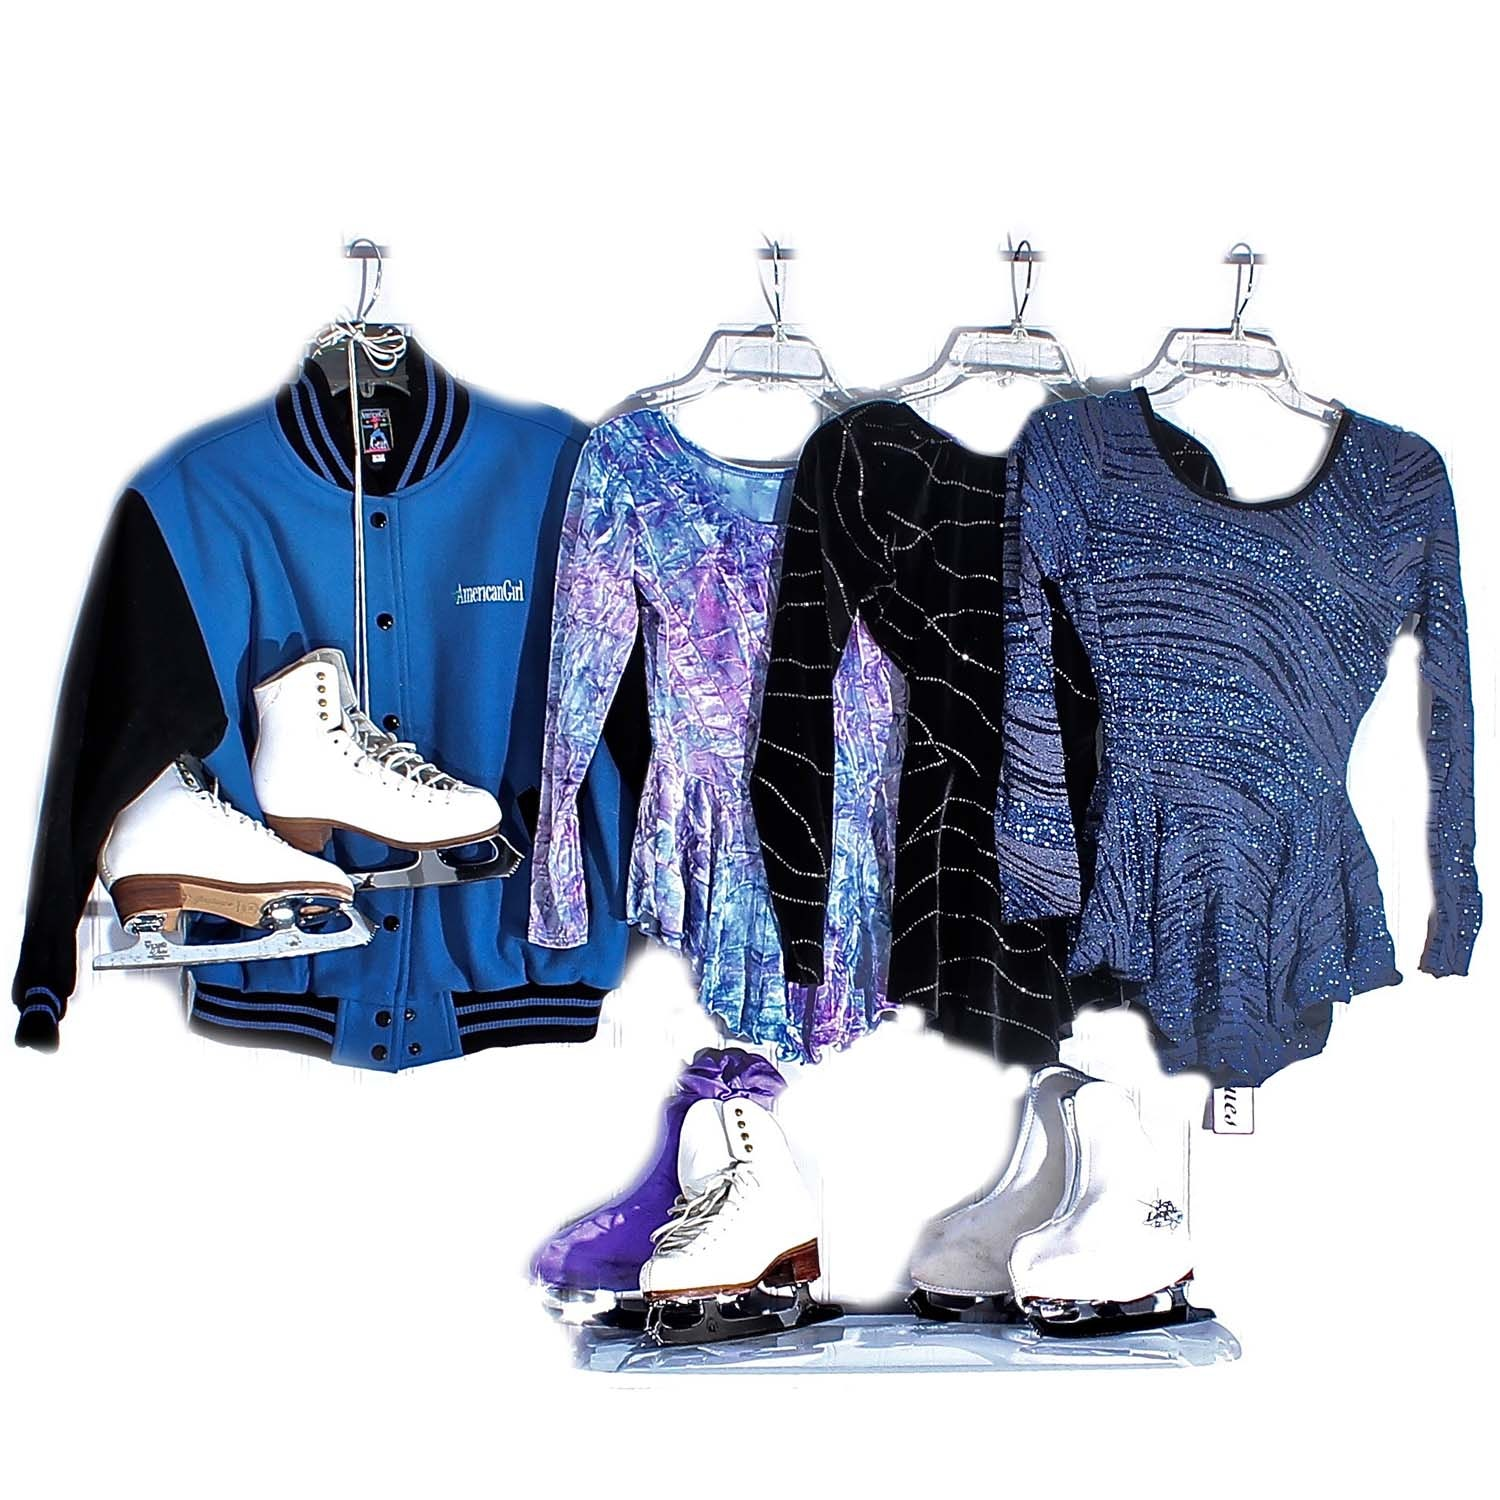 Professional Competitive Figure Skates and Performance Apparel